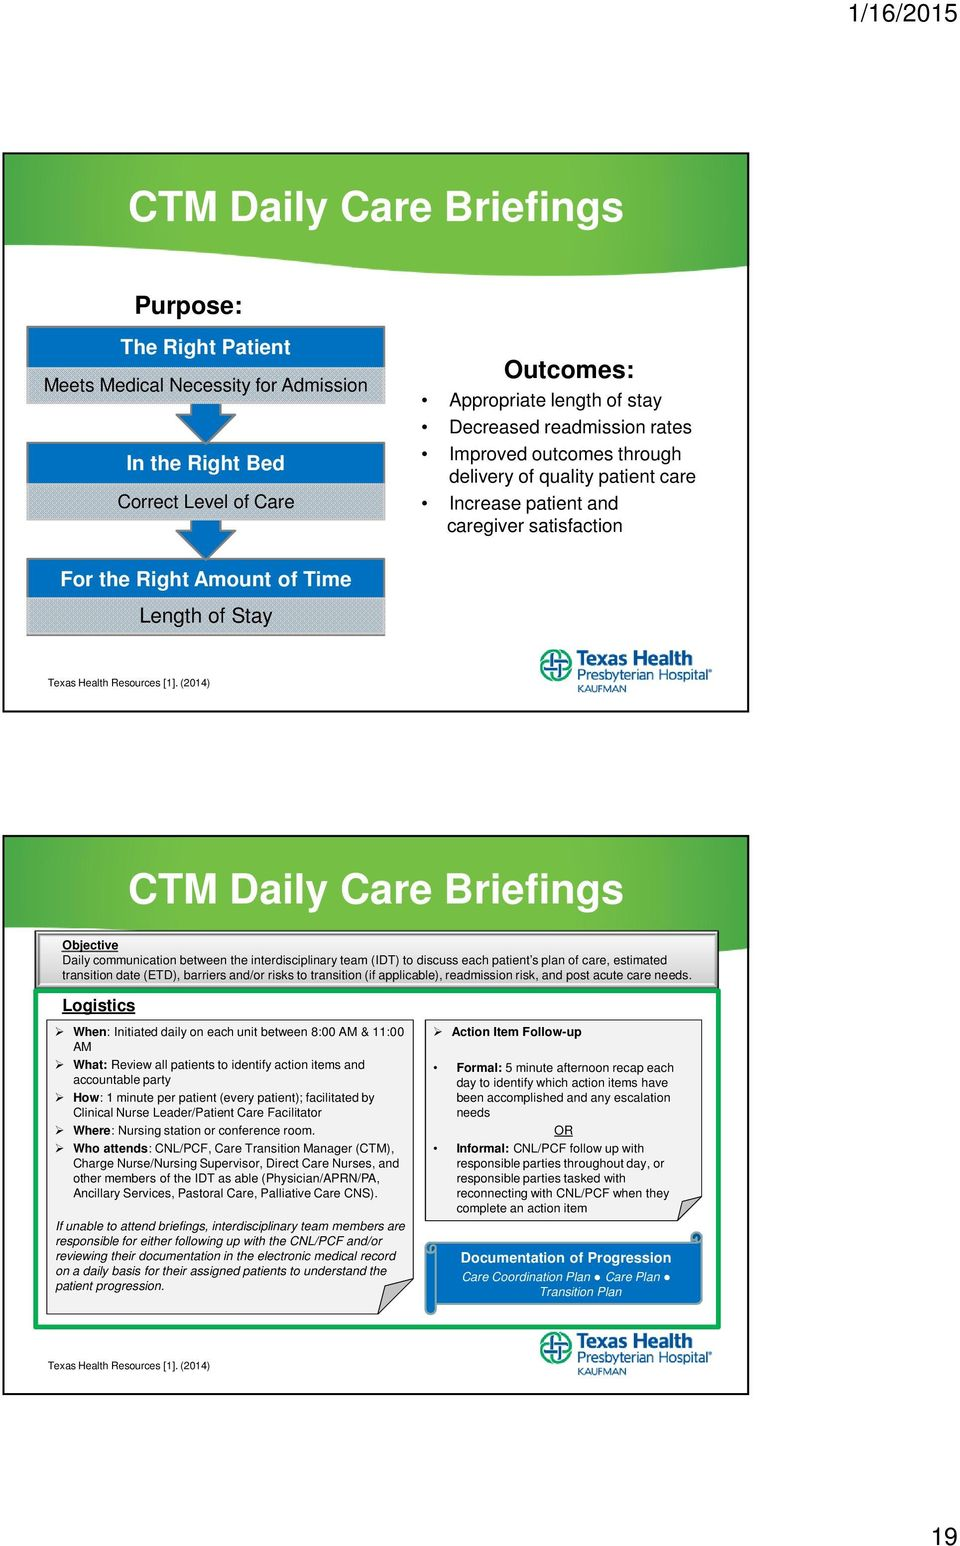 (2014) CTM Daily Care Briefings Objective Daily communication between the interdisciplinary team (IDT) to discuss each patient s plan of care, estimated transition date (ETD), barriers and/or risks